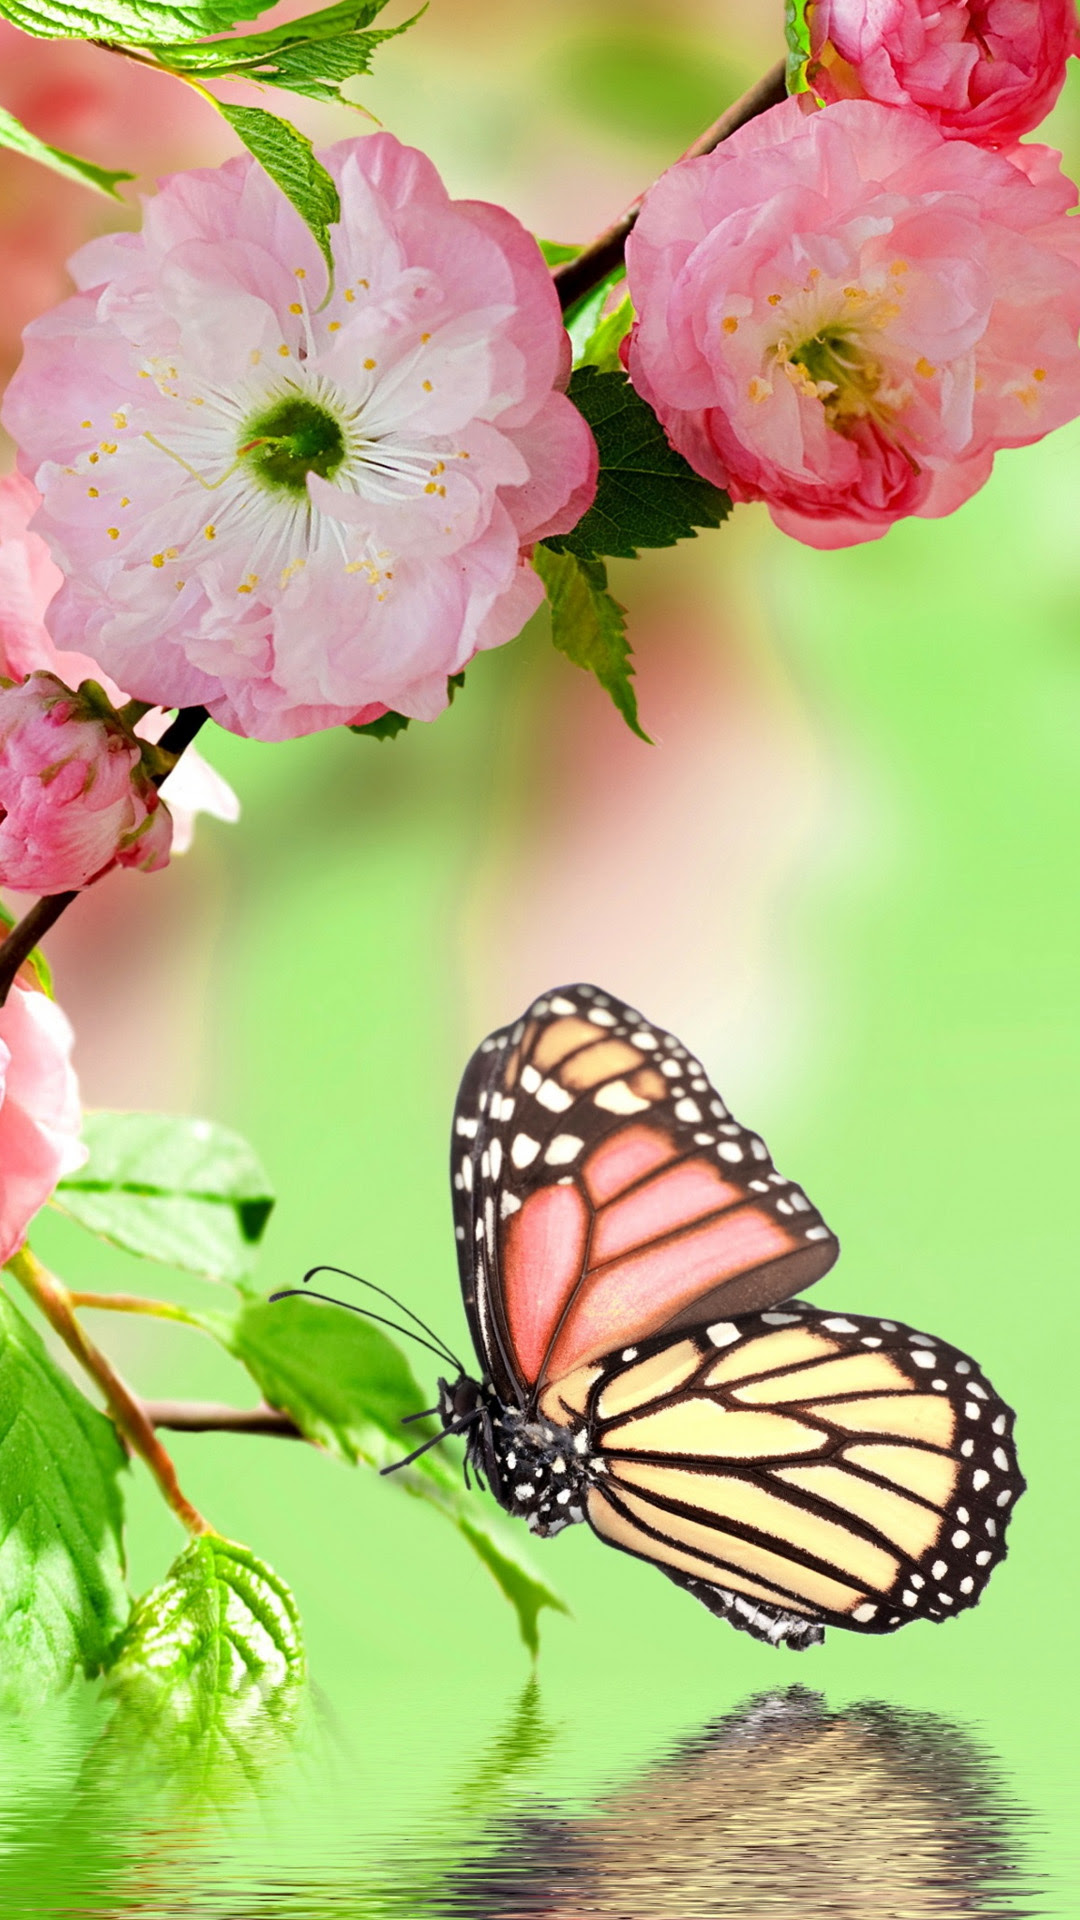 Butterfly Wallpaper For Android | HD Wallpapers ...